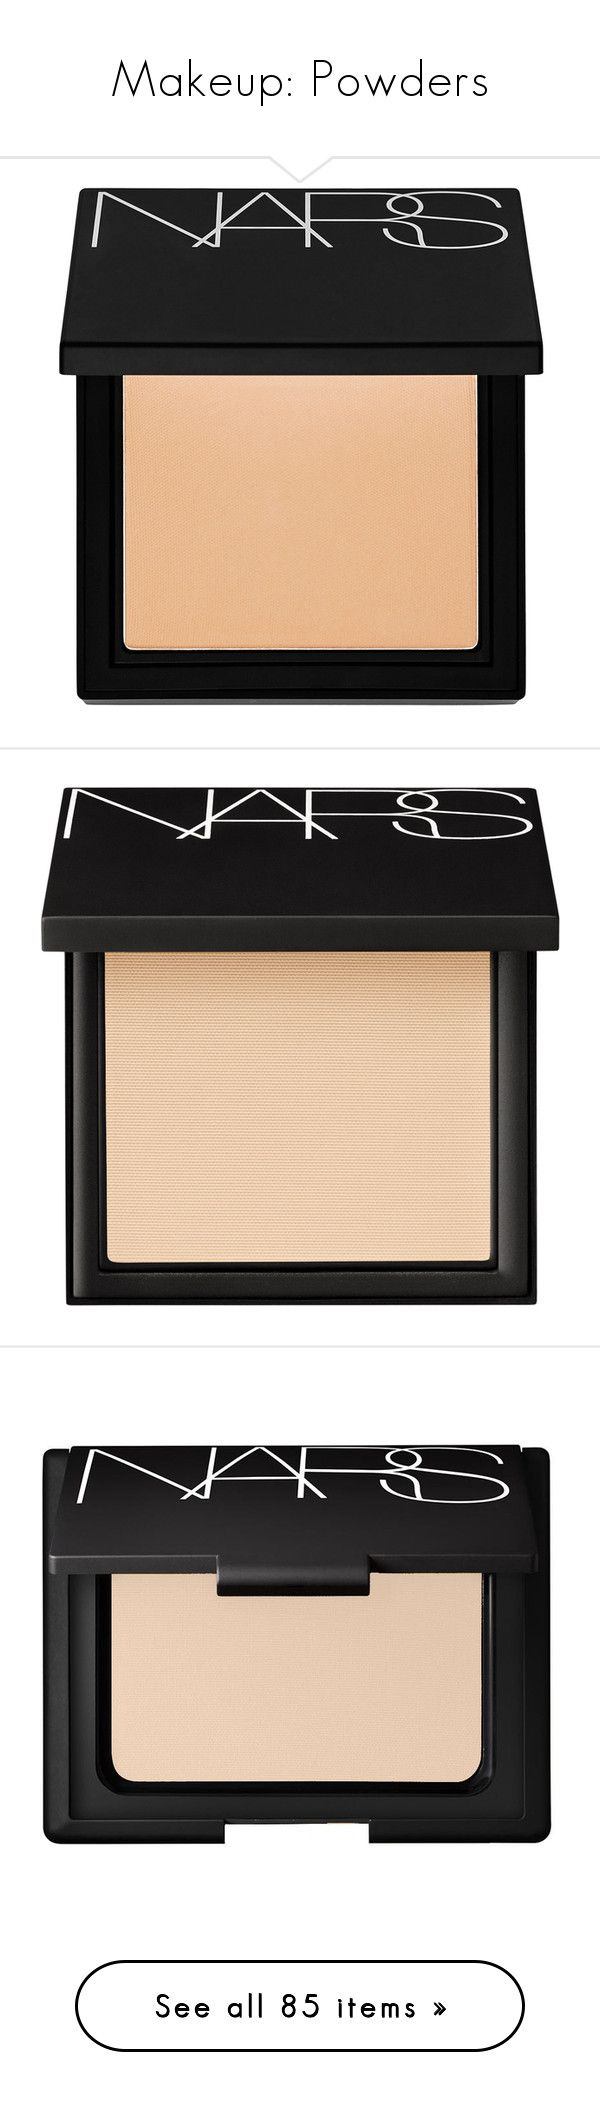 """""""Makeup: Powders"""" by katiasitems on Polyvore featuring beauty products, makeup, face makeup, foundation, beauty, fillers, make, 34. foundation & blush., paraben-free foundation and oil free paraben free foundation"""